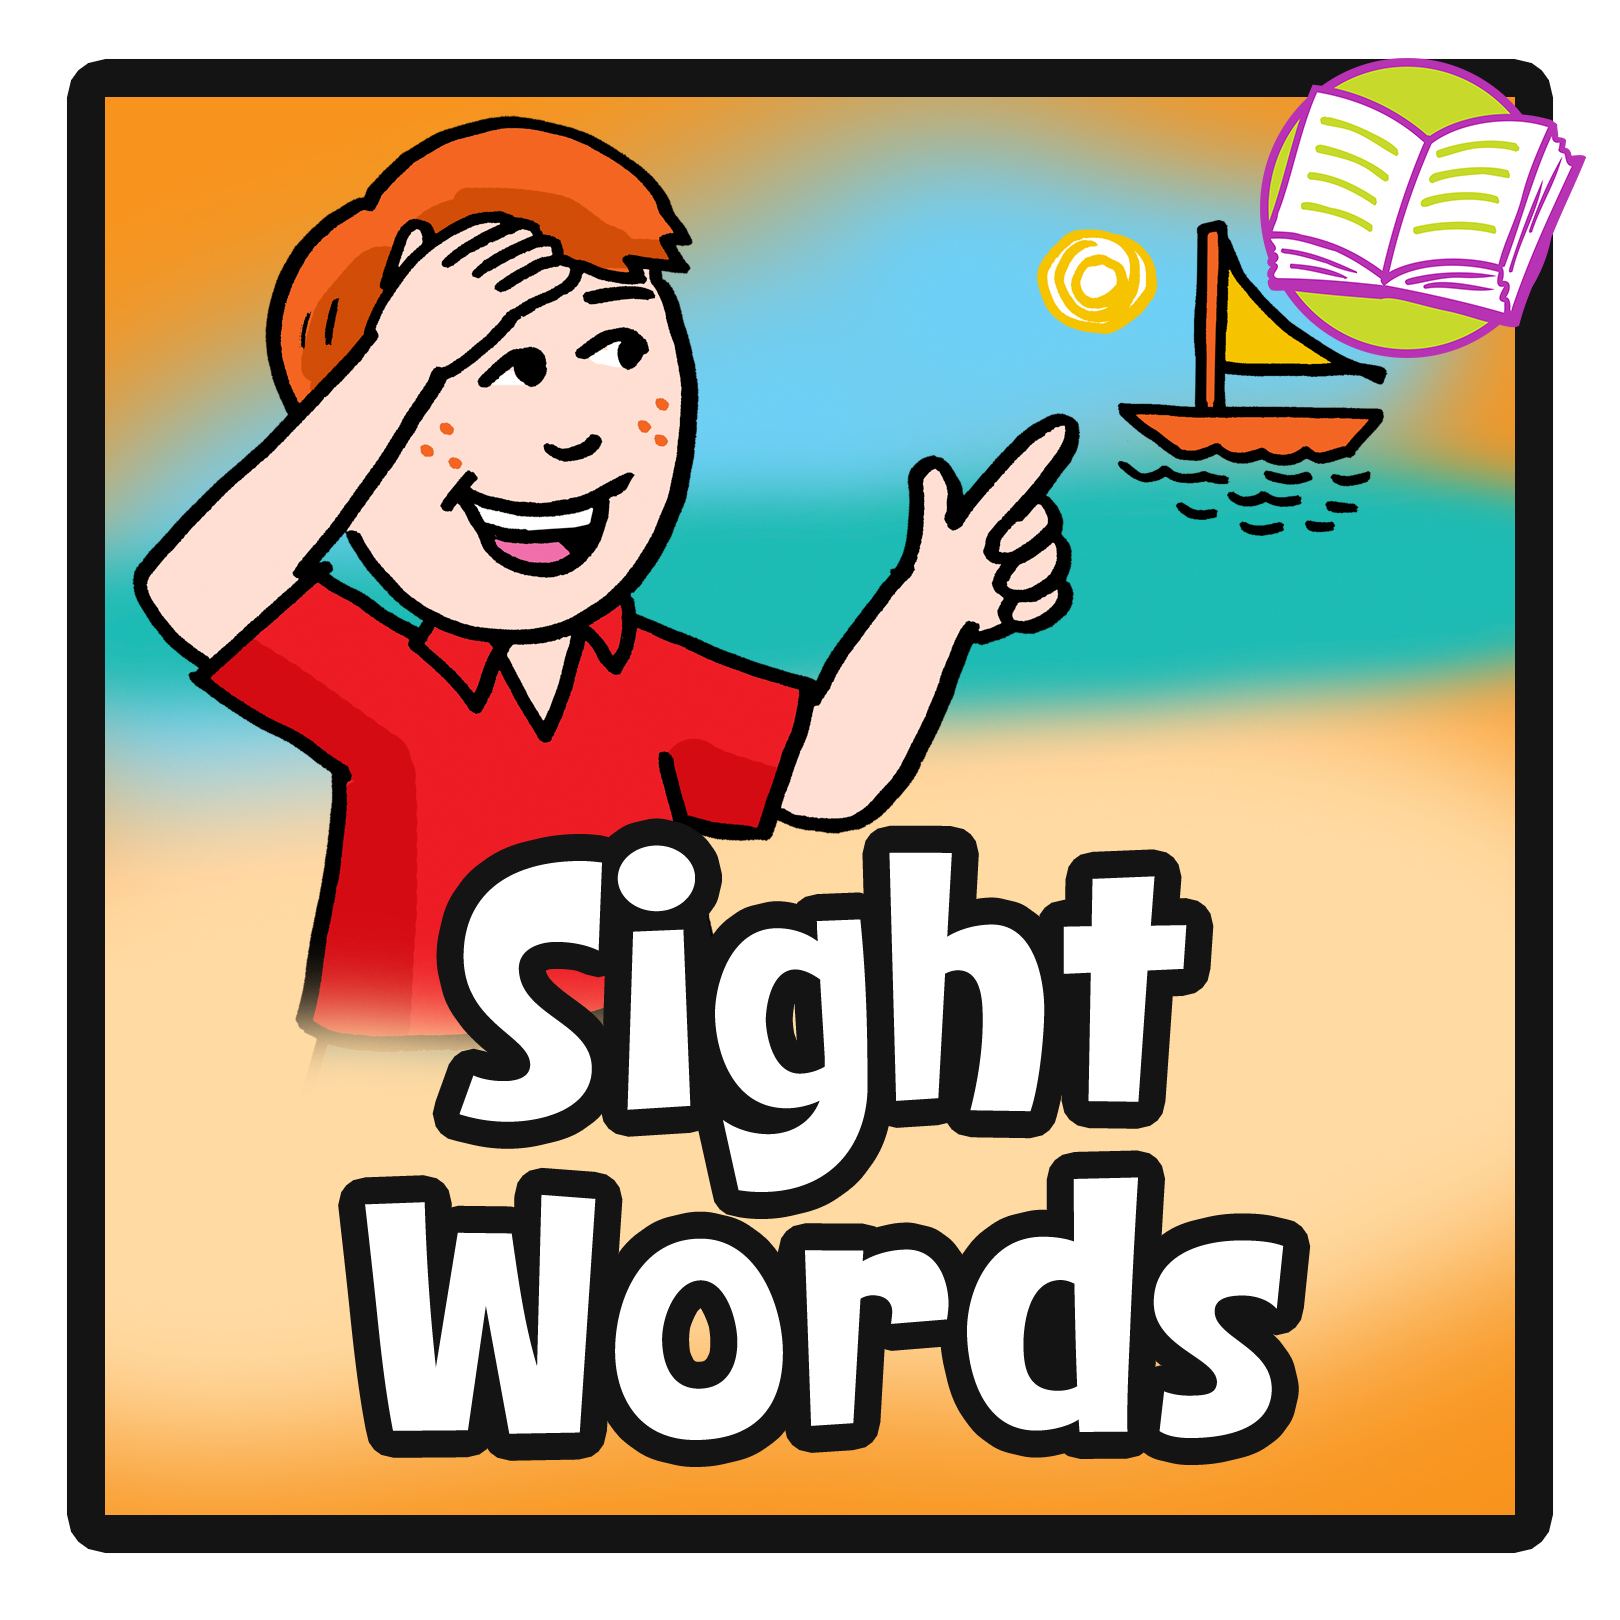 Free sight cliparts download. Word clipart action image royalty free stock